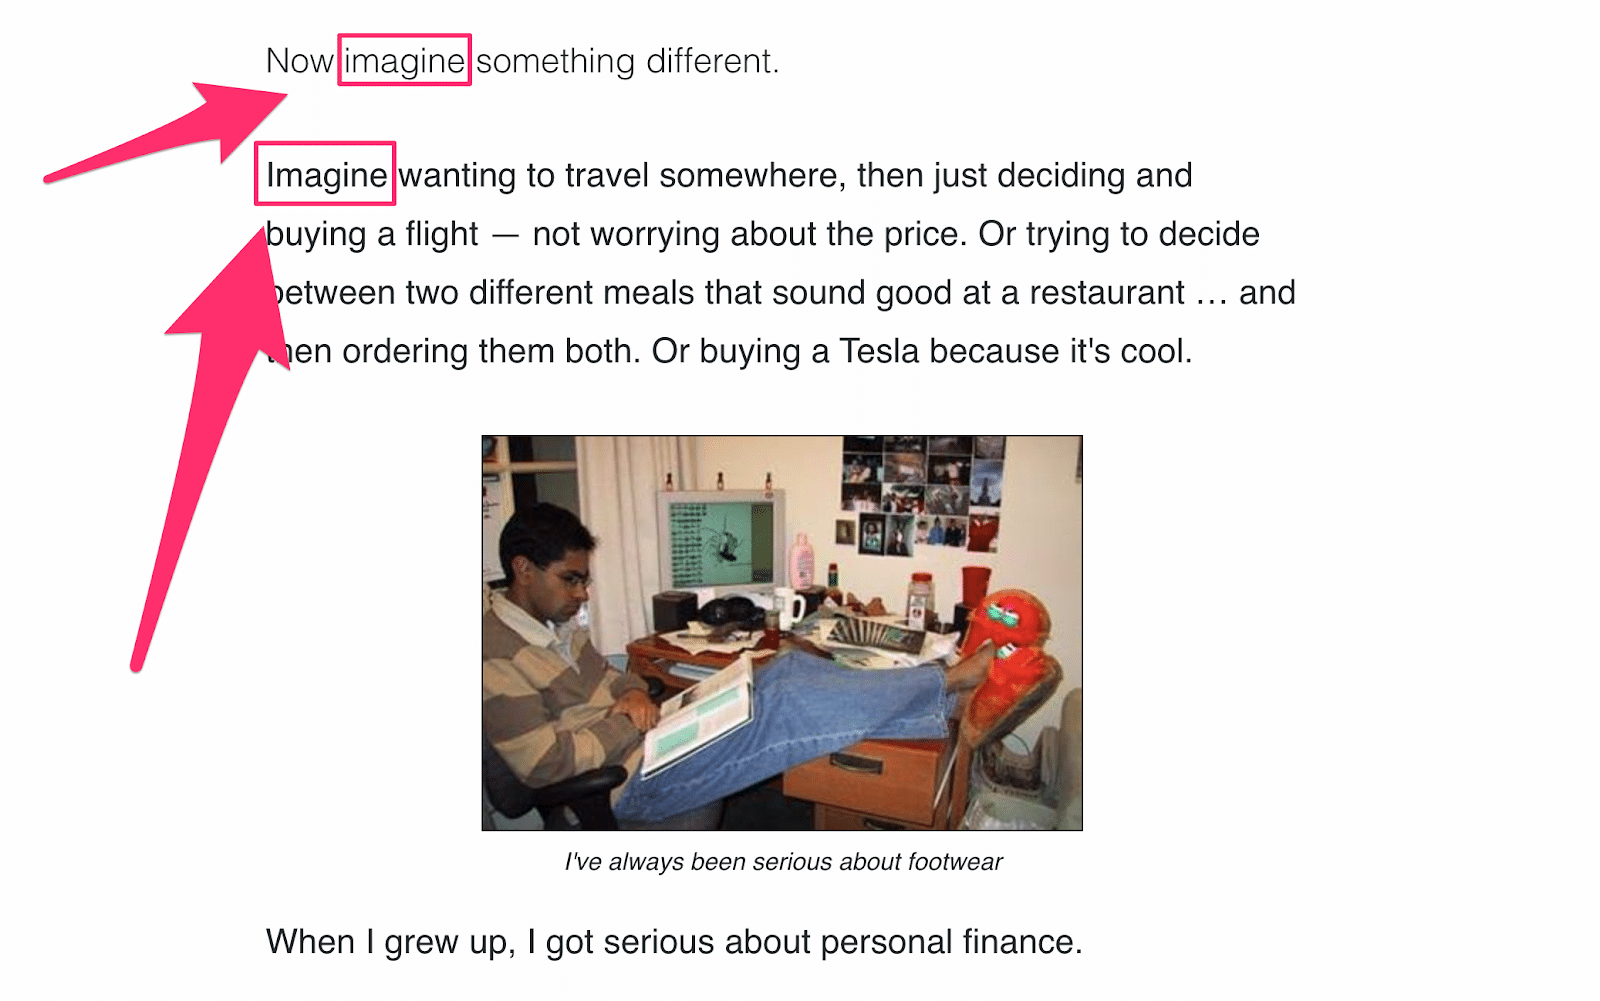 ramit using the word imagine multiple times in his sales copy